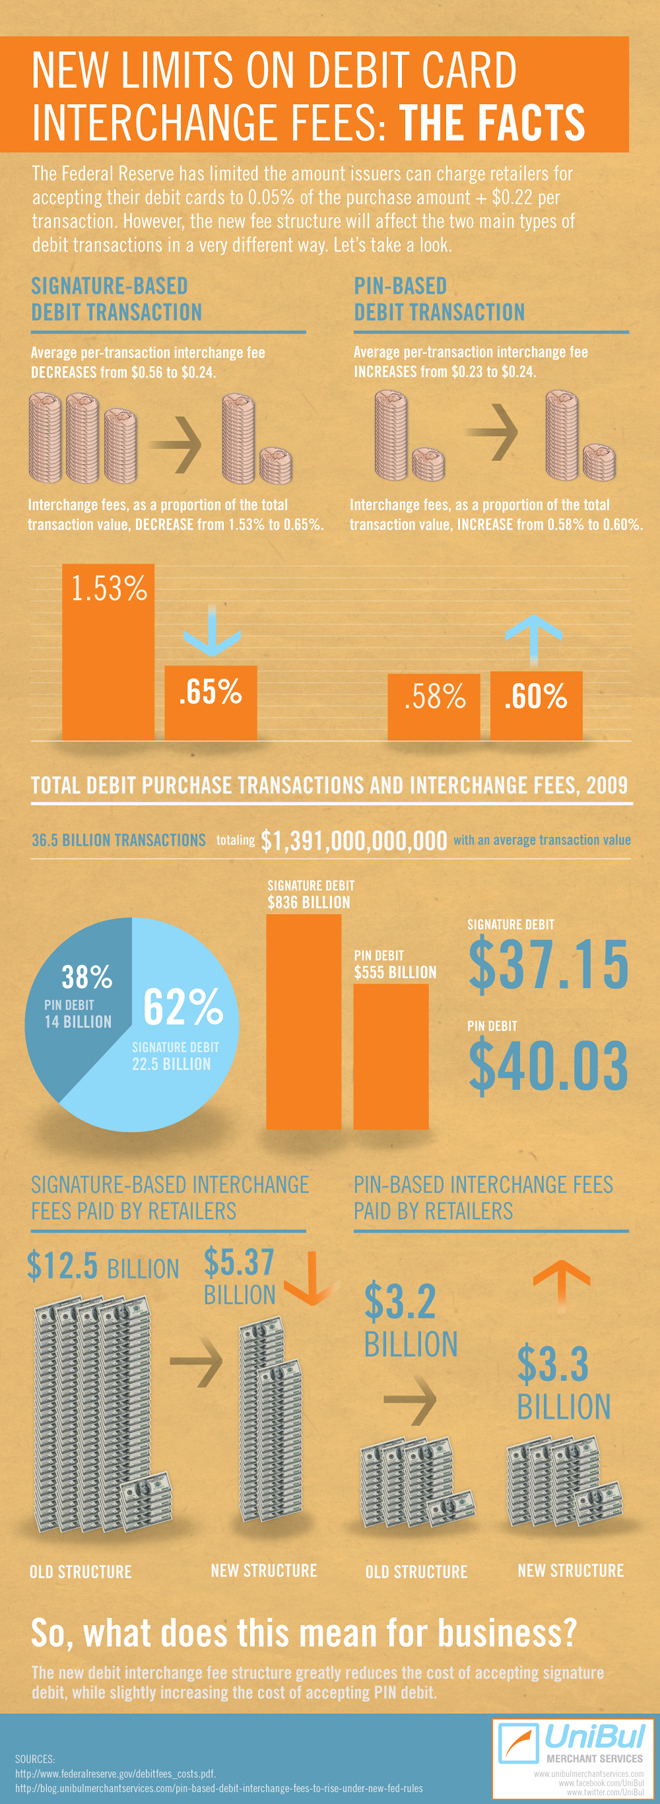 Debit Interchange Fee Limit by the Numbers (Infographic)